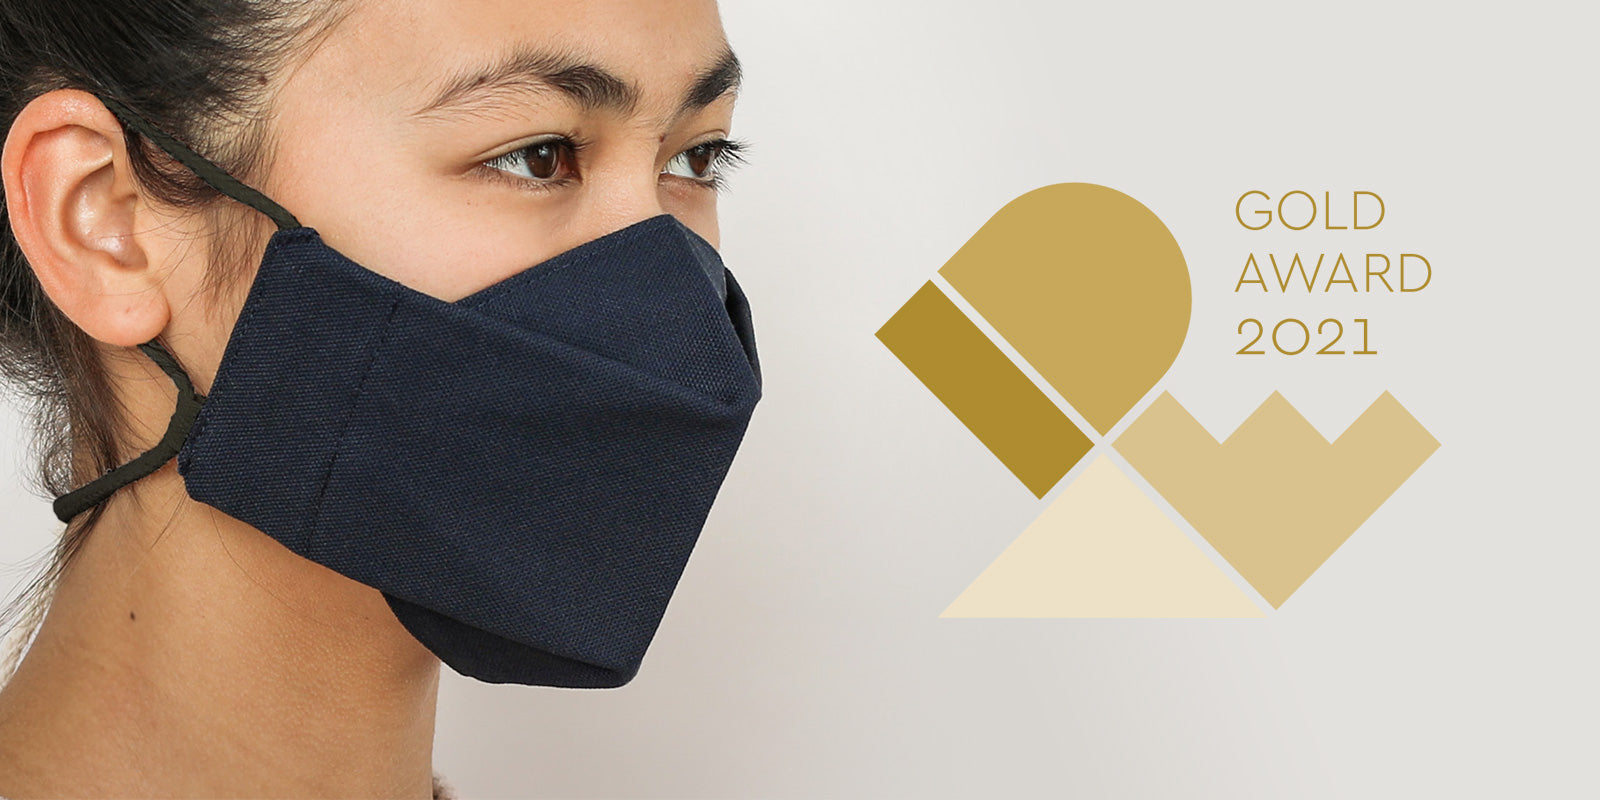 Aplat origami mask design wins gold at the 2021 Industrial Design Excellence Awards